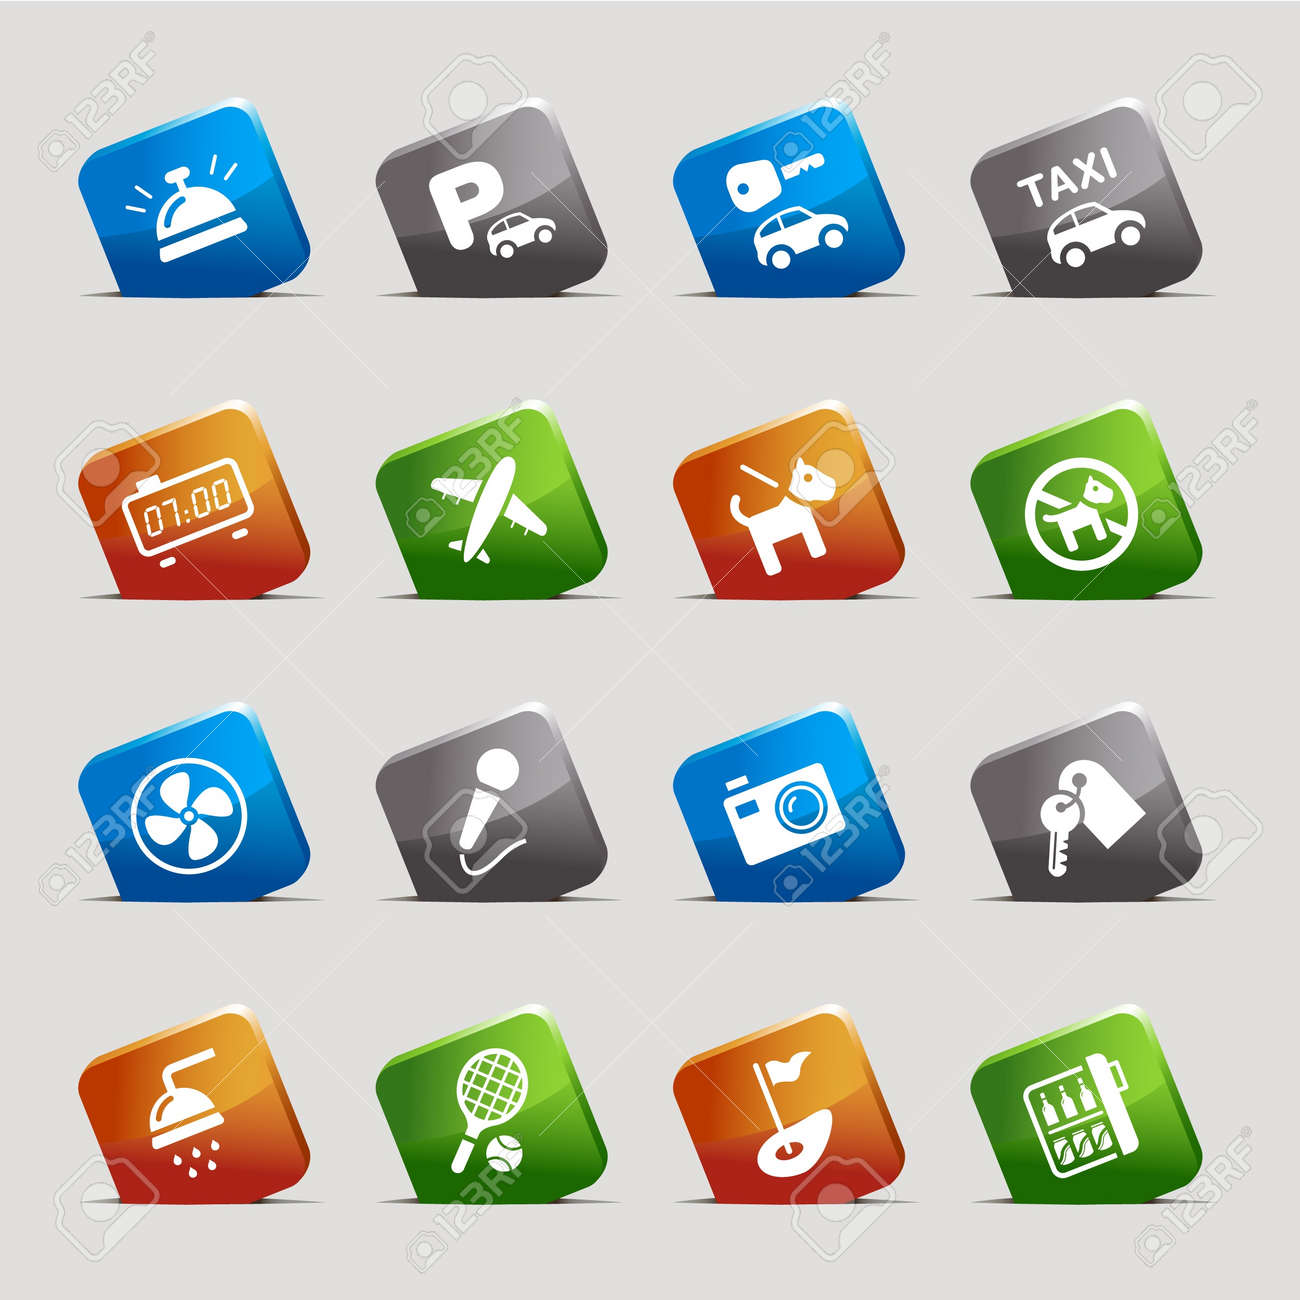 Cut Squares - Hotel icons Stock Vector - 9934699